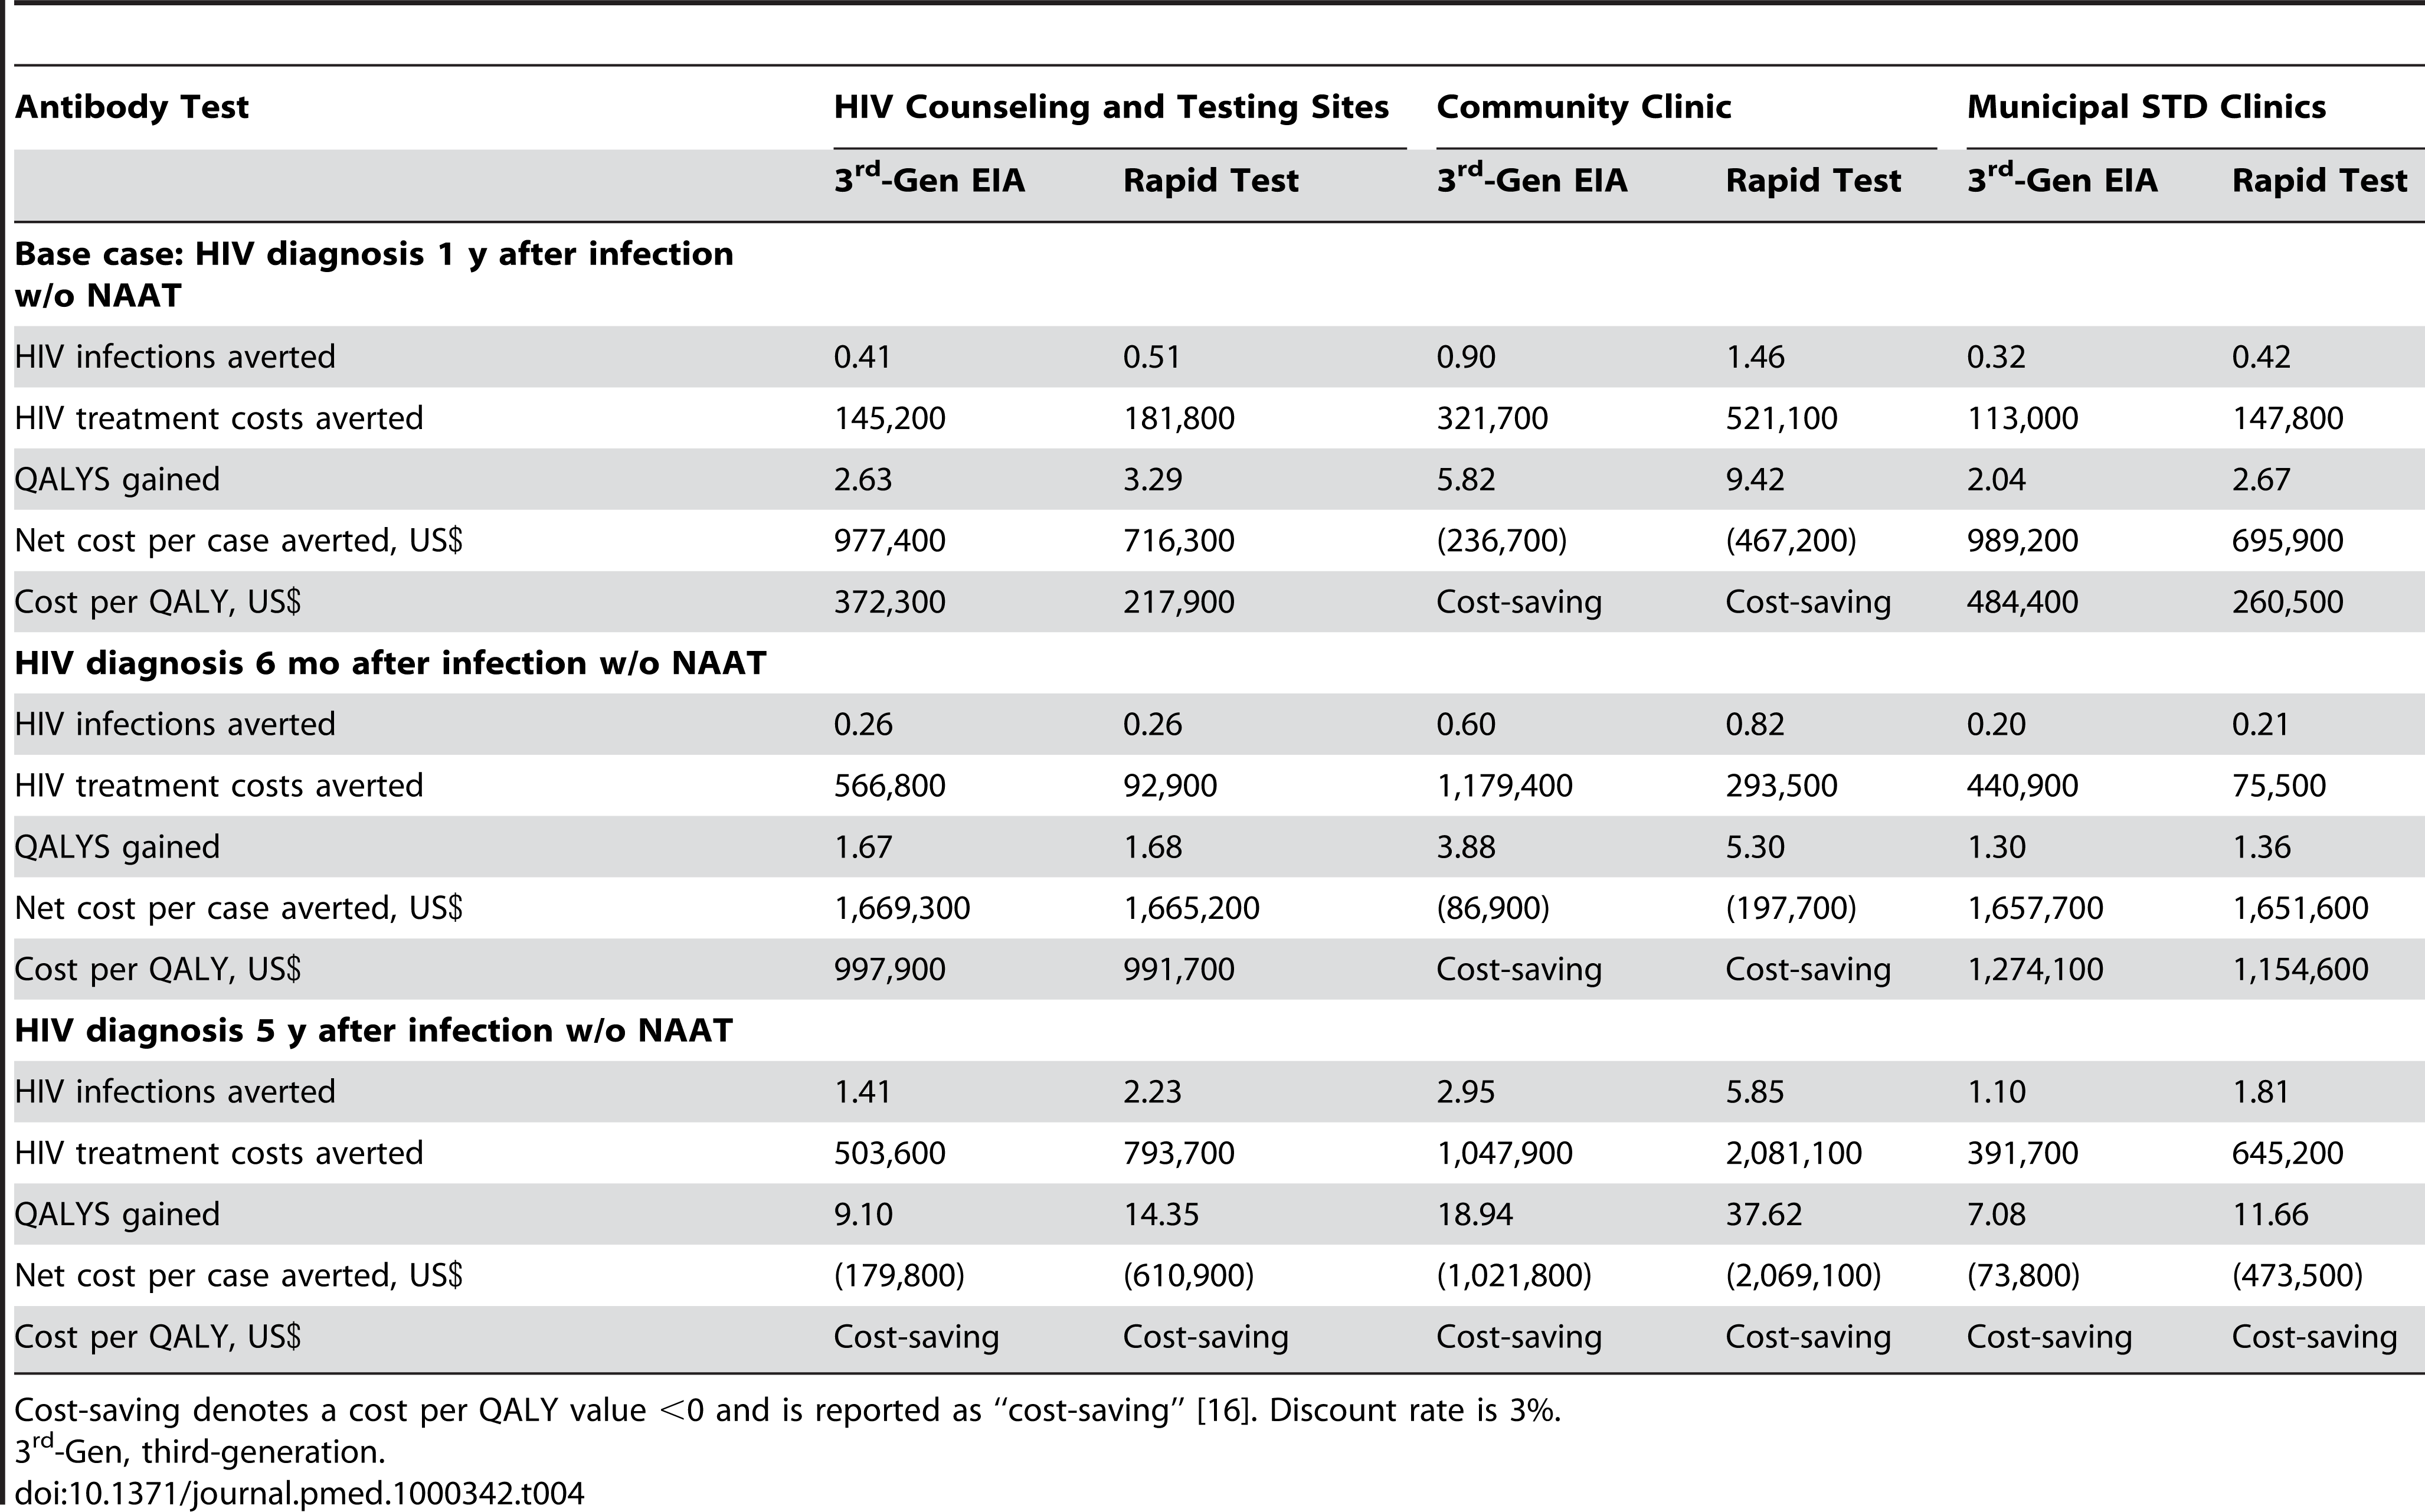 Costs-effectiveness of pooled NAAT screening for AHI after third-generation EIA and rapid testing.